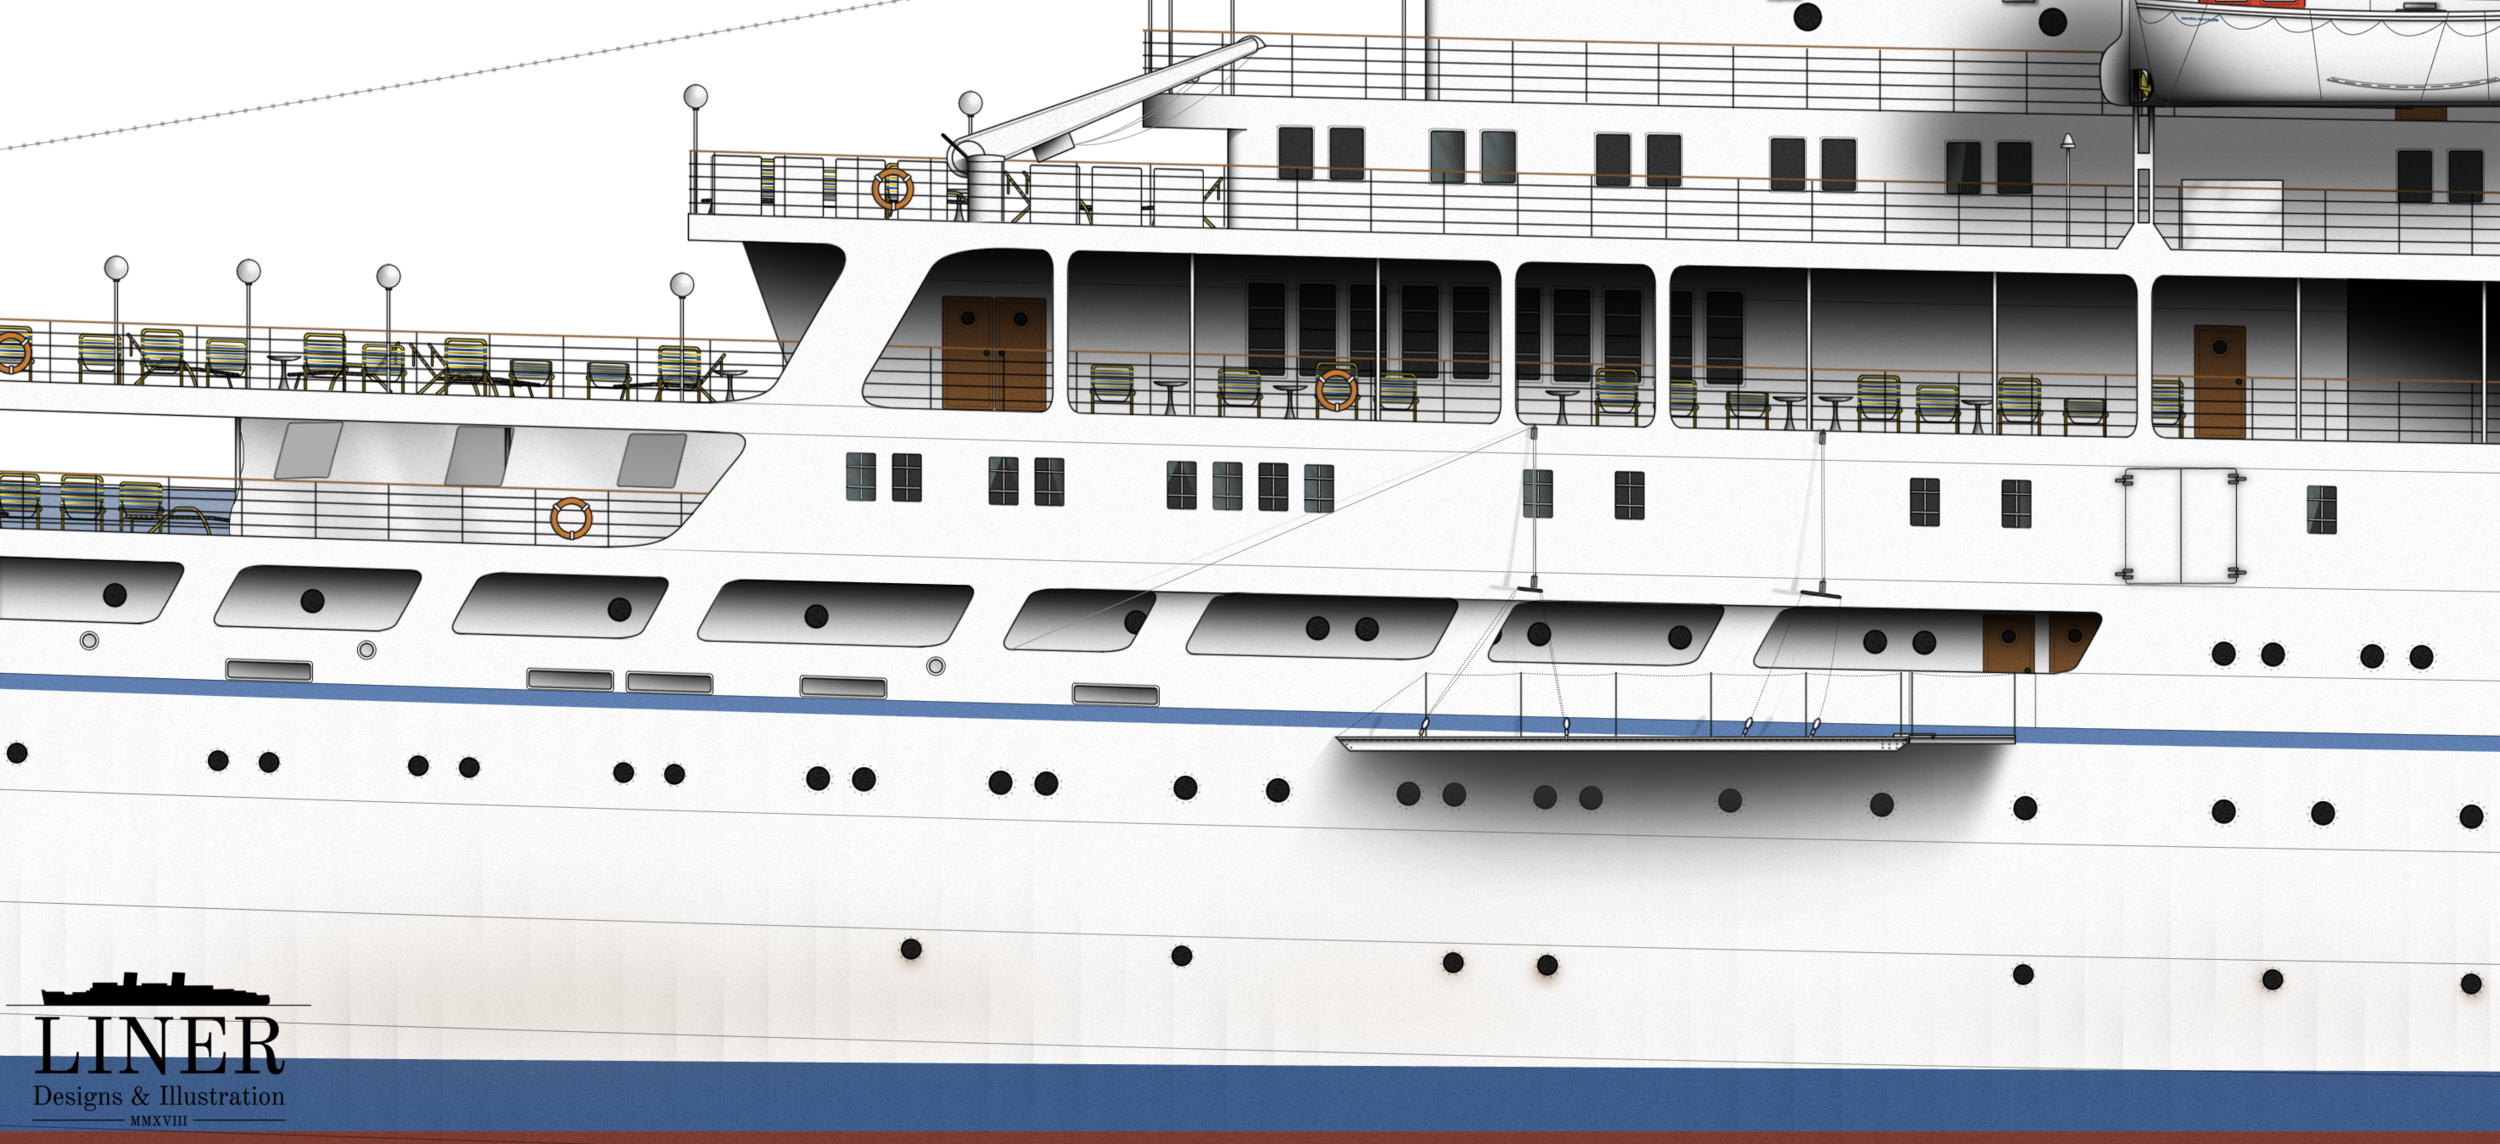 Detail shot of Liner Designs' illustration of the Chandris Lines cruise ship Amerikanis.  Learn More